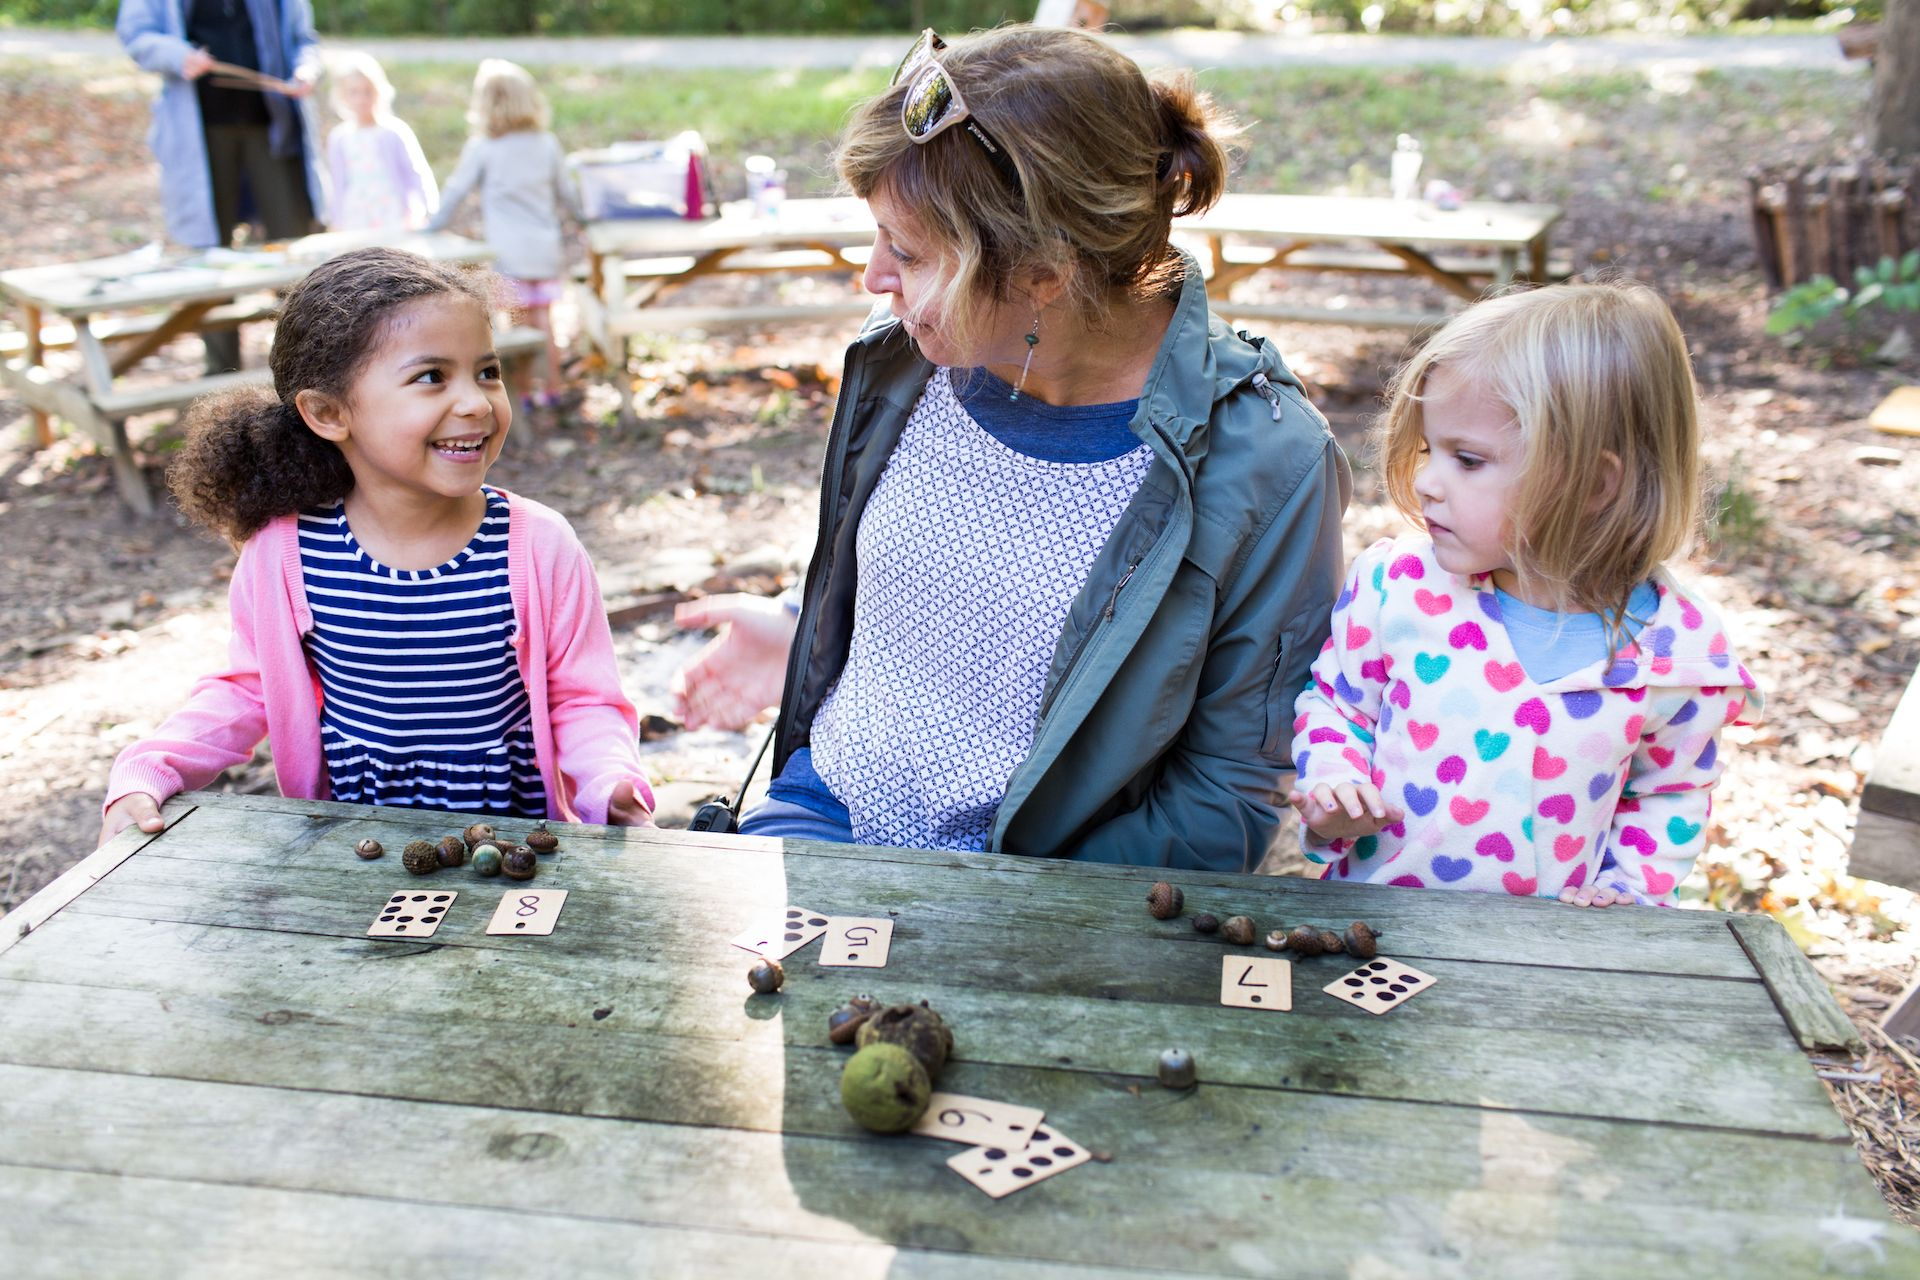 Real-life experiences enable children to utilize social and academic skills and to make the connections for experiencing history, applying math and science or understanding the concept of interdependence. Classroom skills and concepts greatly enhanced when the learning moves outside.